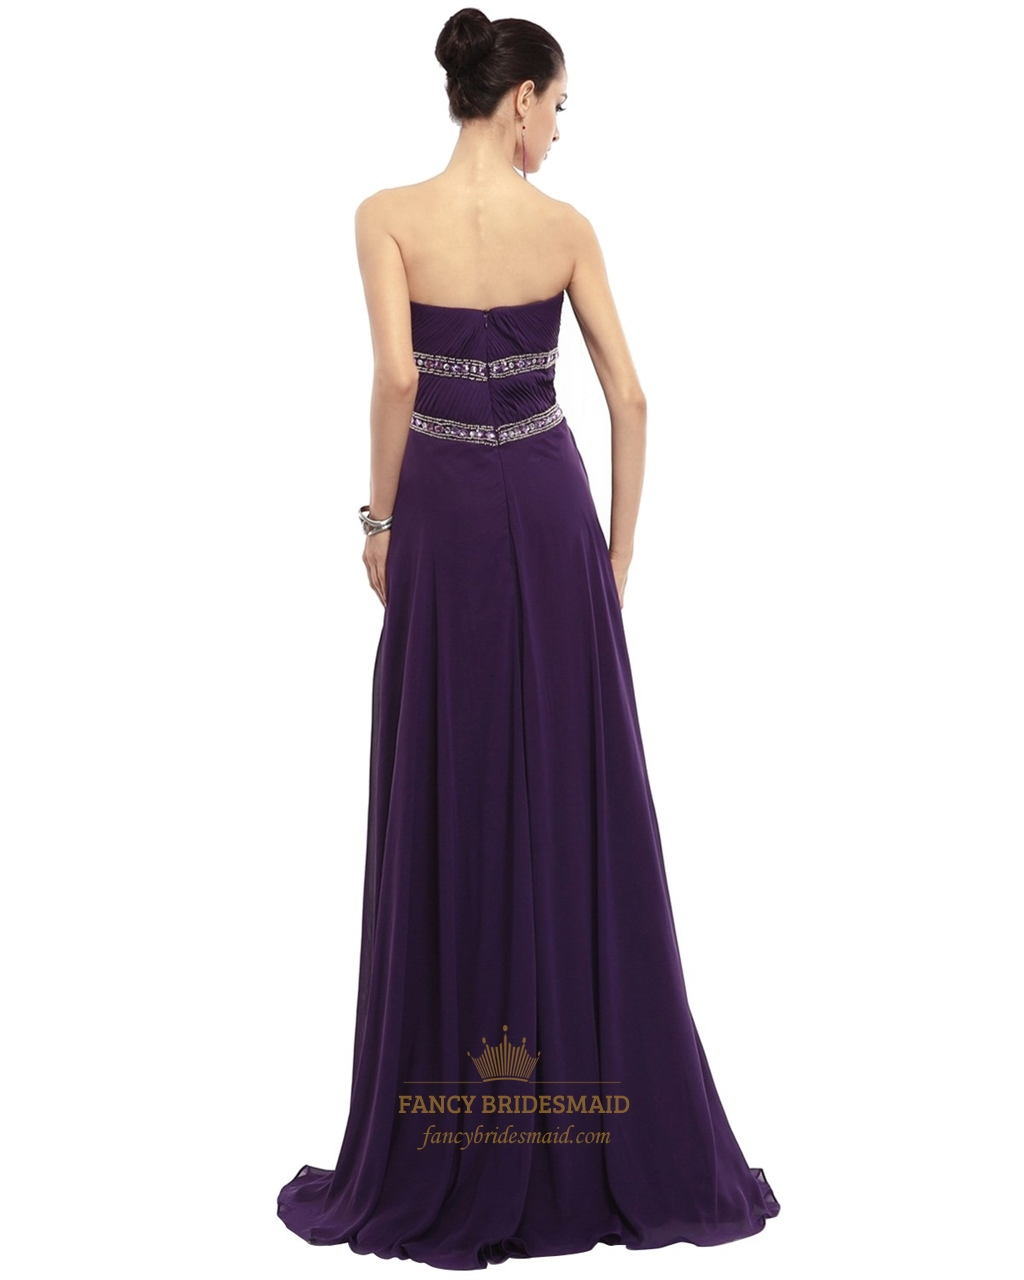 Embellished Bodice Strapless Wedding Gown: Purple Sweetheart Strapless Beaded Chiffon Dress With